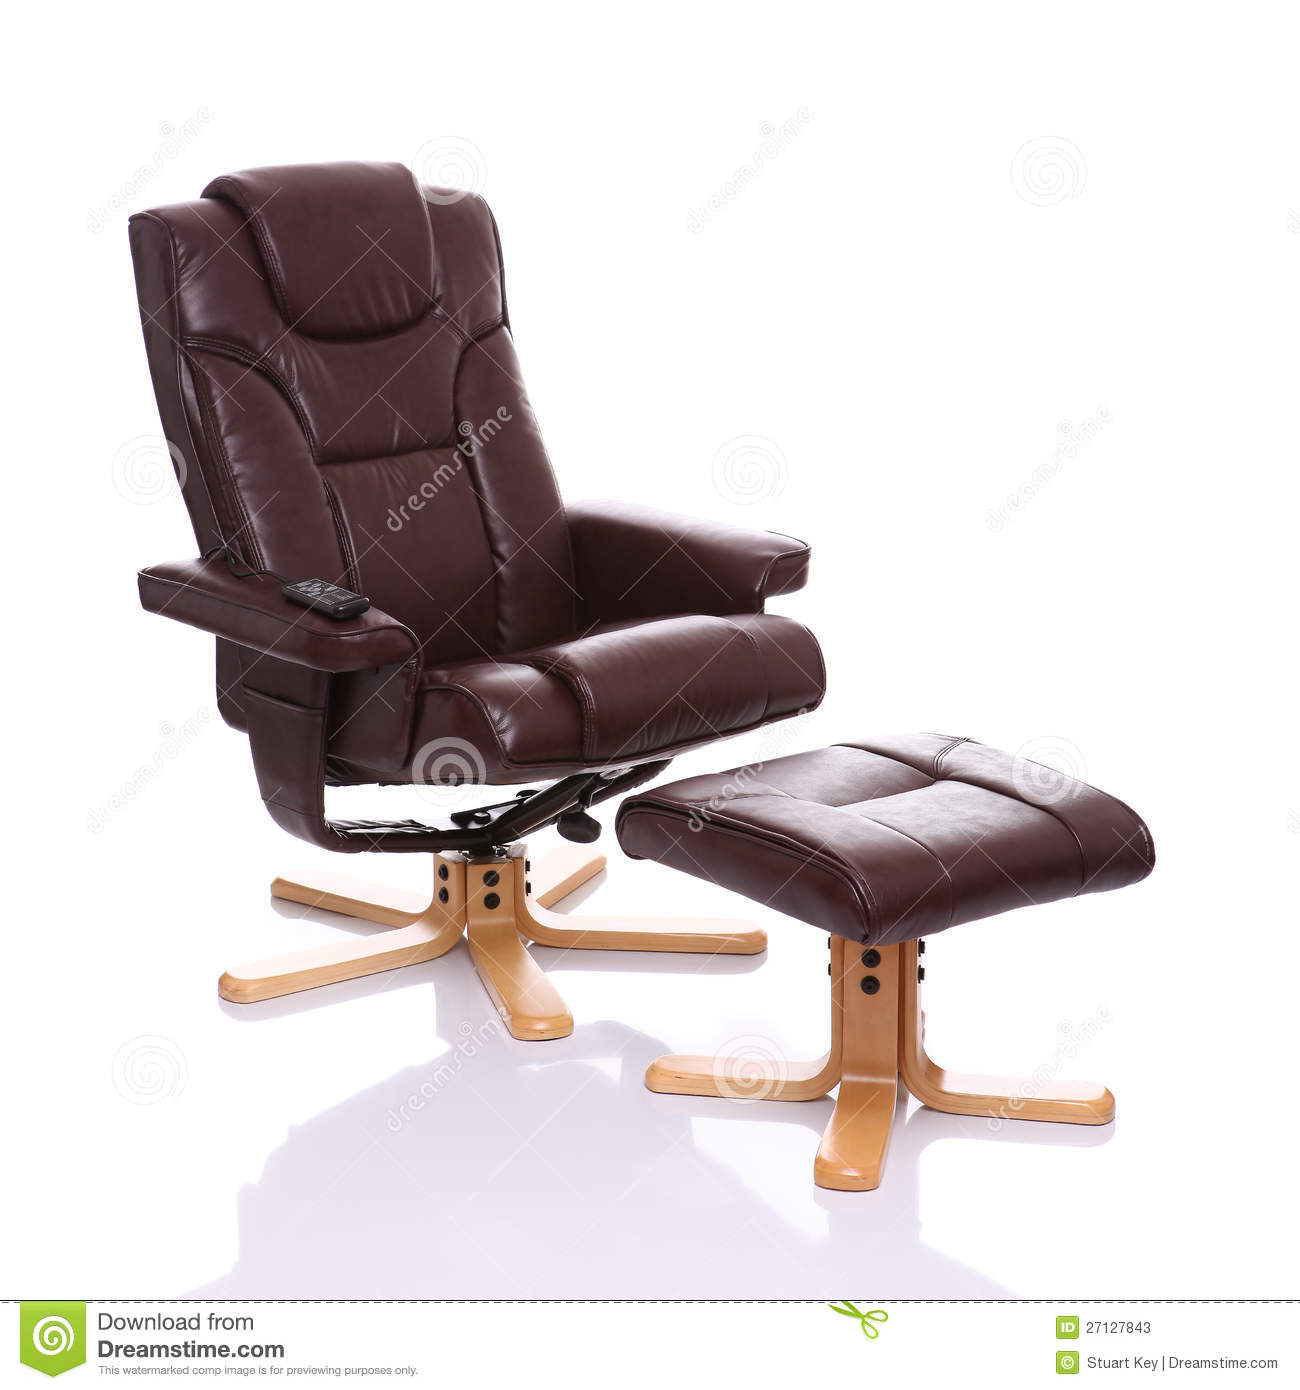 Royalty-Free Stock Photo. Download Leather Heated Recliner Chair With Footstool ...  sc 1 st  Dreamstime.com & Leather Heated Recliner Chair With Footstool Stock Photos - Image ... islam-shia.org